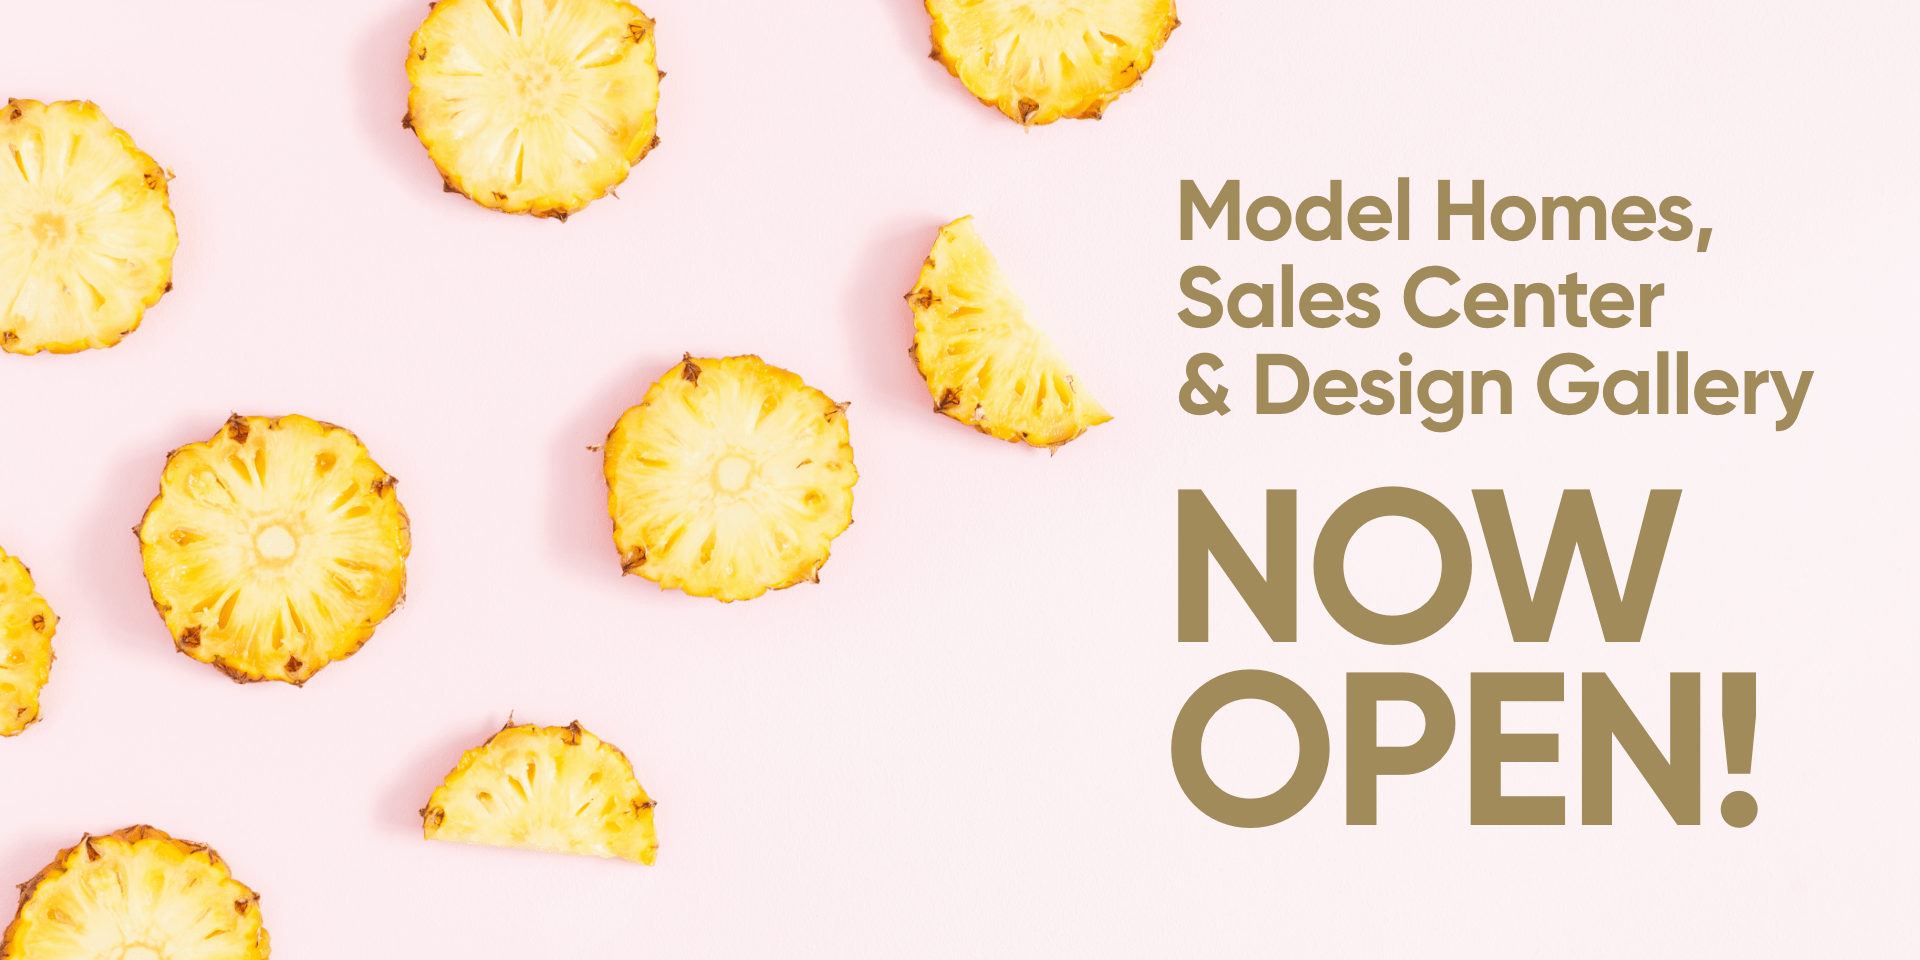 Model Homes, Sales Center & Design Gallery Are Now Open!